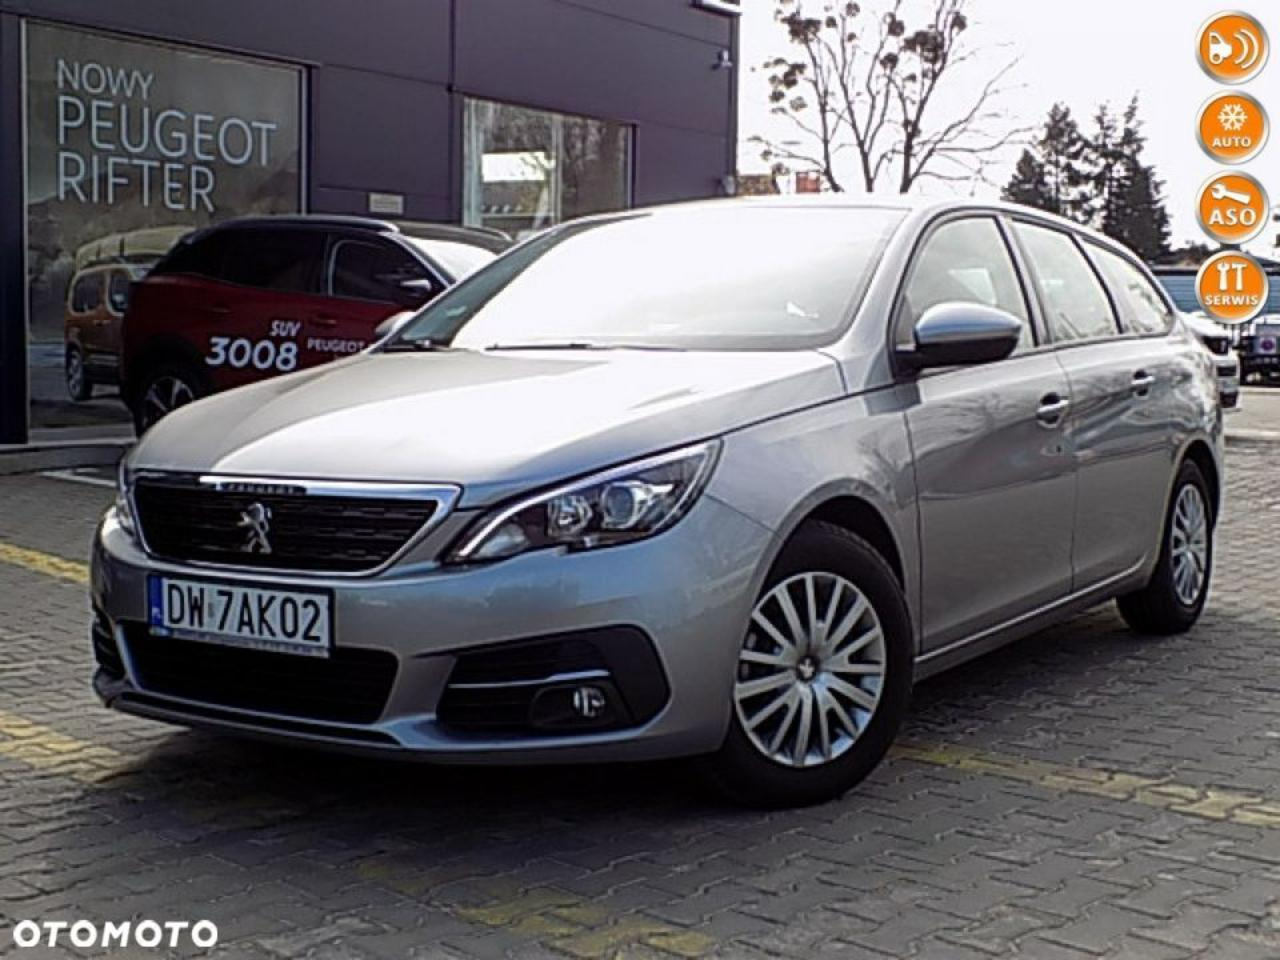 Peugeot 308 SW 1.6 BlueHDi Business Line S&S